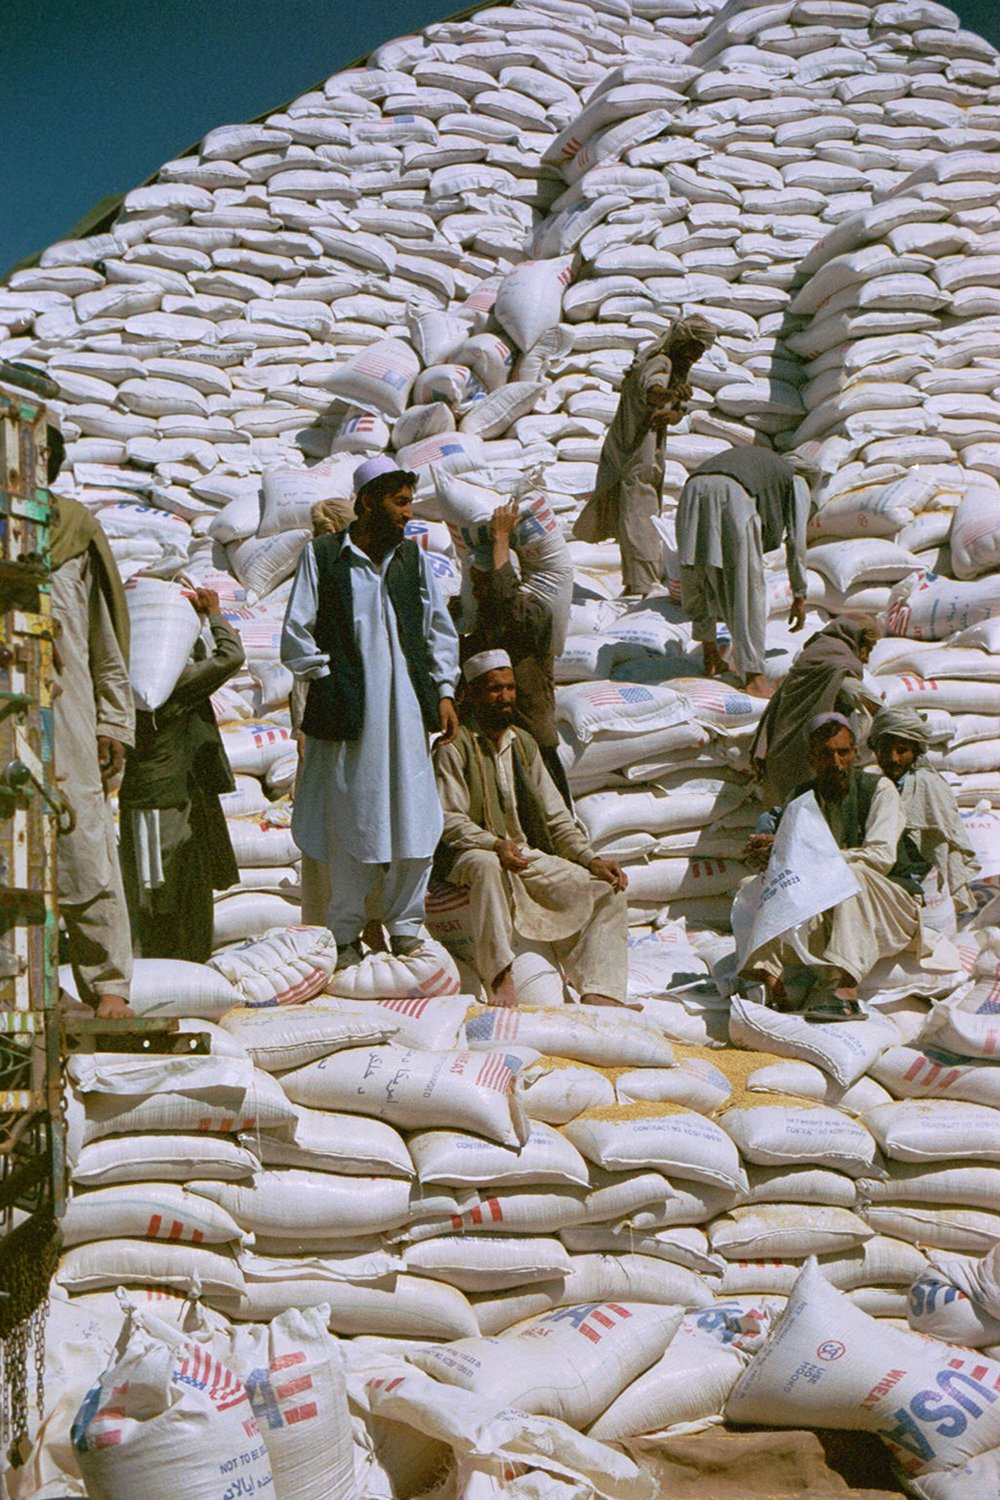 In Afghanistan, large quantities of US wheat, flown in by USAID after the fall of Taliban, drove down the price of local wheat and income of many farmers. Nitin Madhav